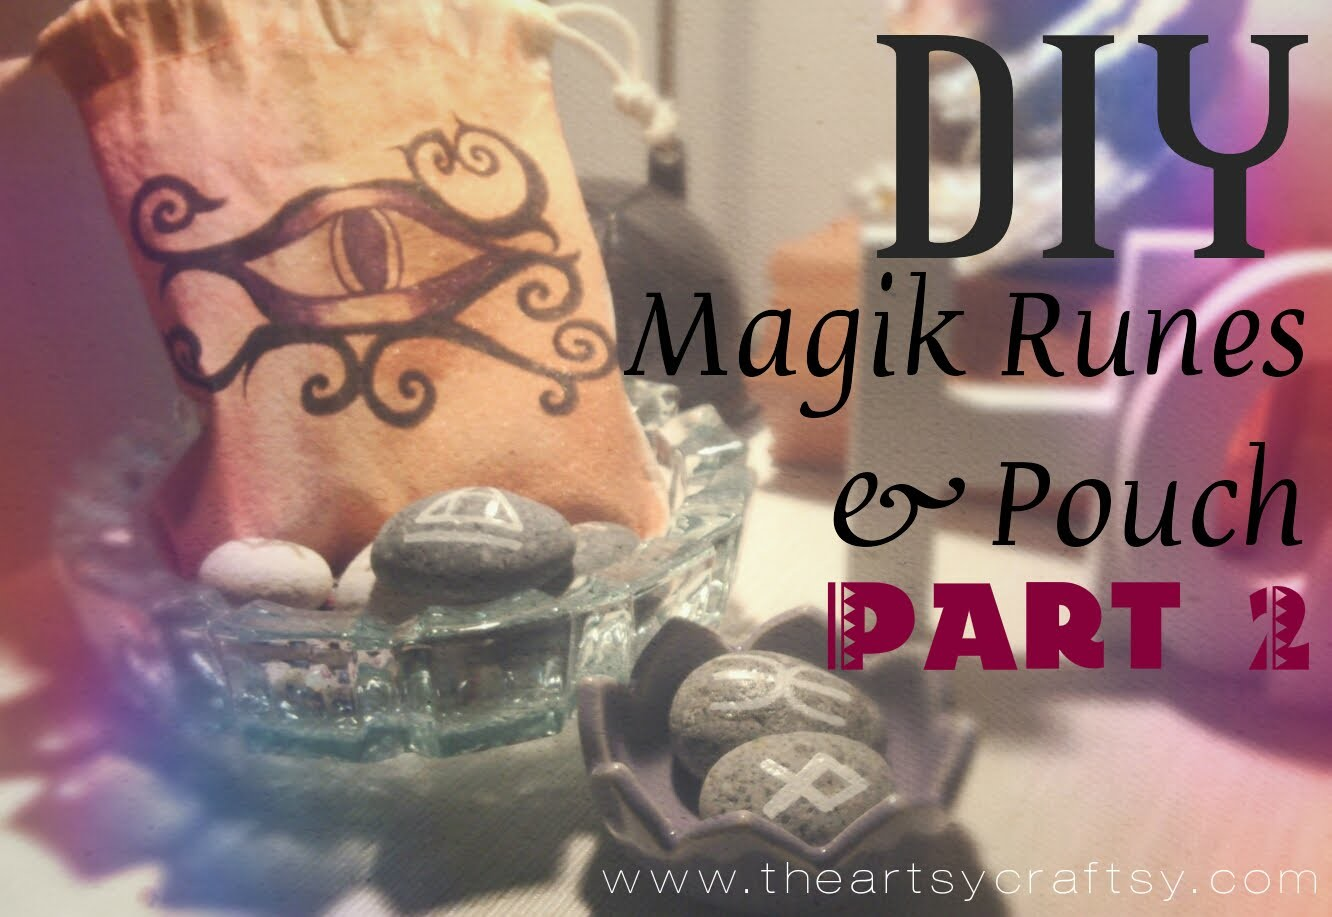 DIY Magikal Runes with Bag Part 2